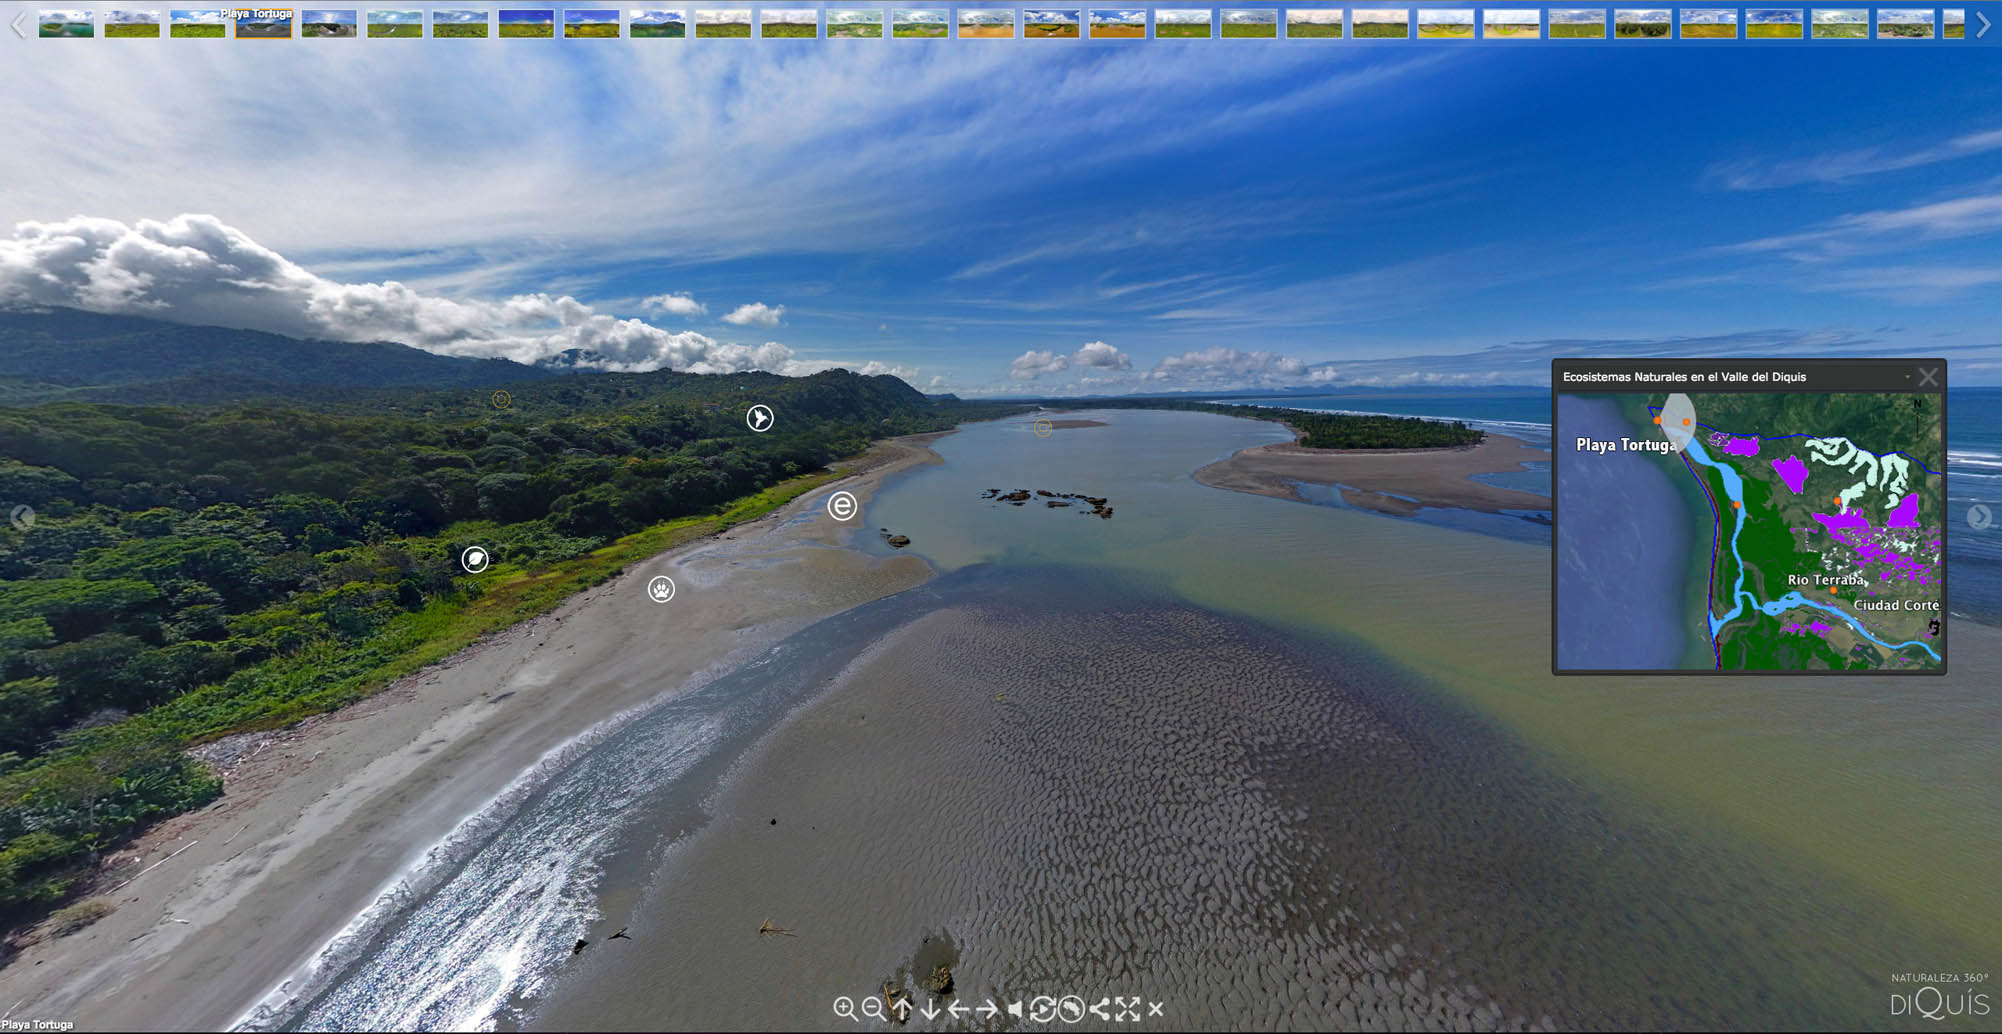 NATURE 360° | Discover the Diquís in 360° aerial photographs